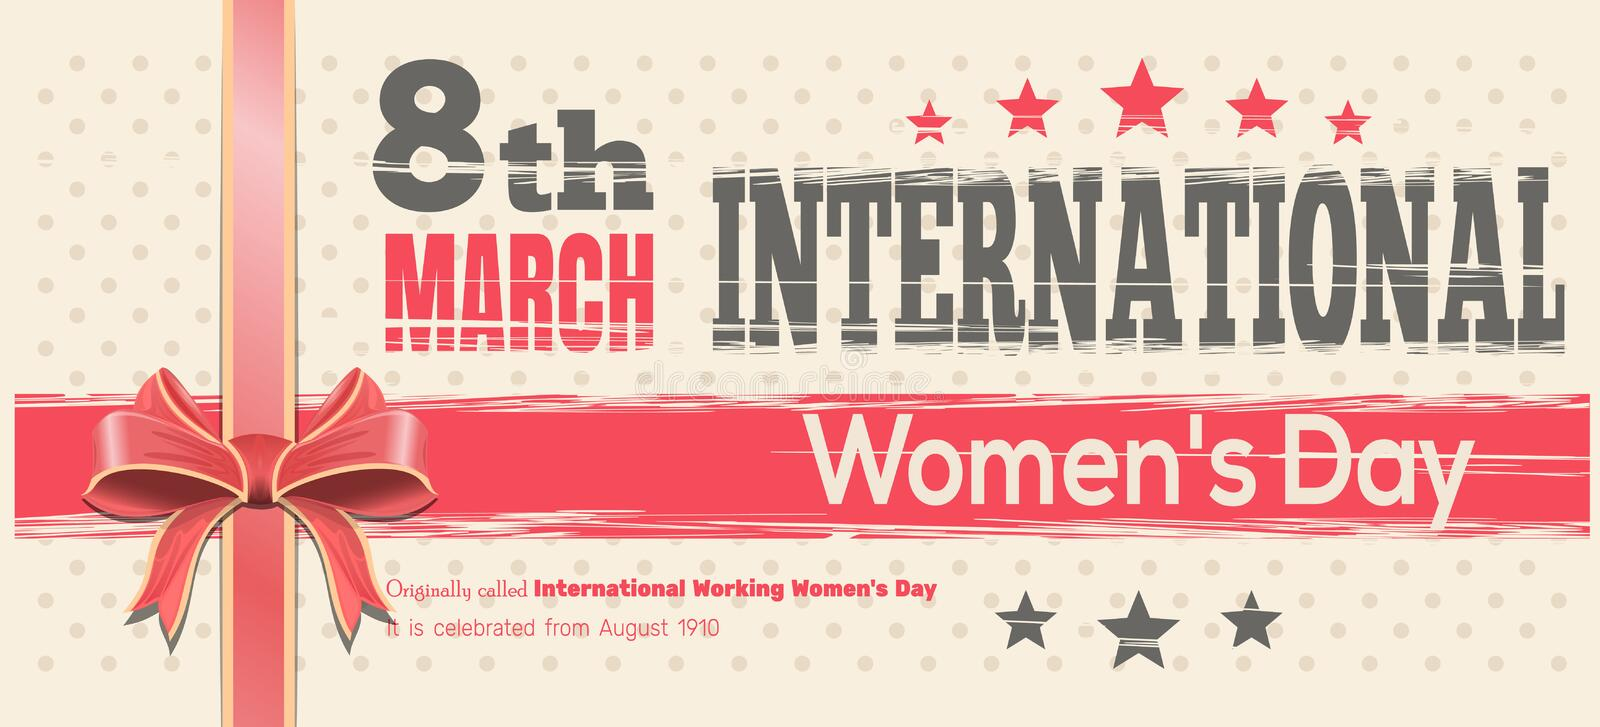 International Womens Day card. Celebrate the Power of Women on 8th March royalty free illustration